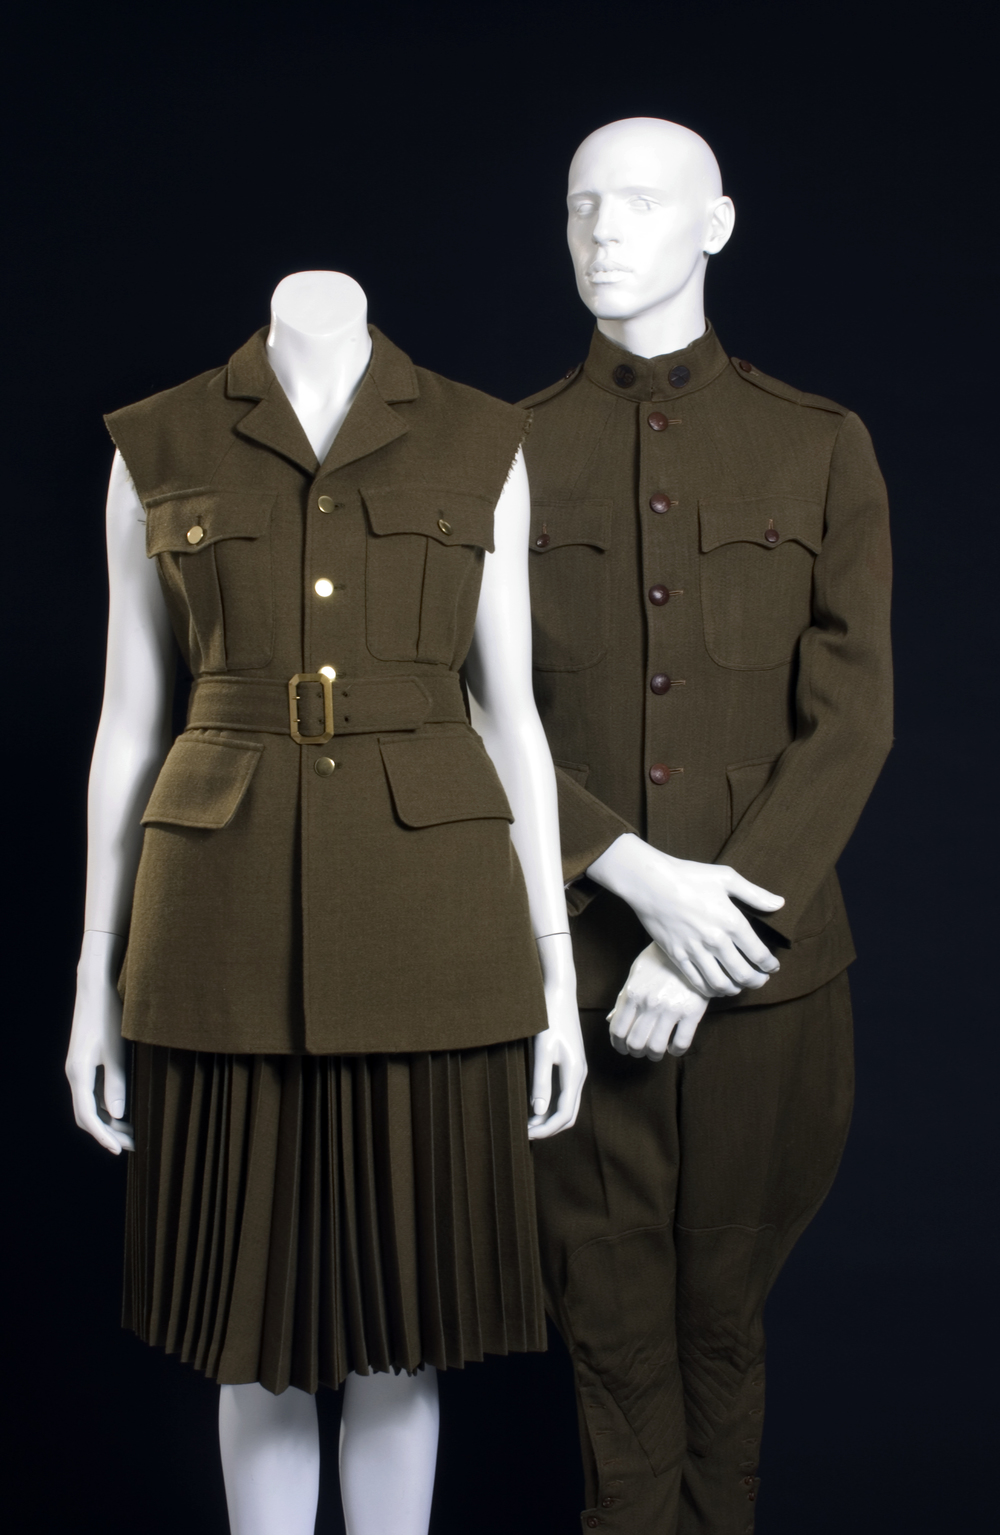 (left) Comme des Garcons (Rei Kawakubo), ensemble, 1998, wool, Japan, museum purchase; (right) U.S. Army World War I Service Uniform, 1914-1918, wool, USA, Gift of Mrs. Roswell Gilpatric. Photo courtesy of Museum at FIT.